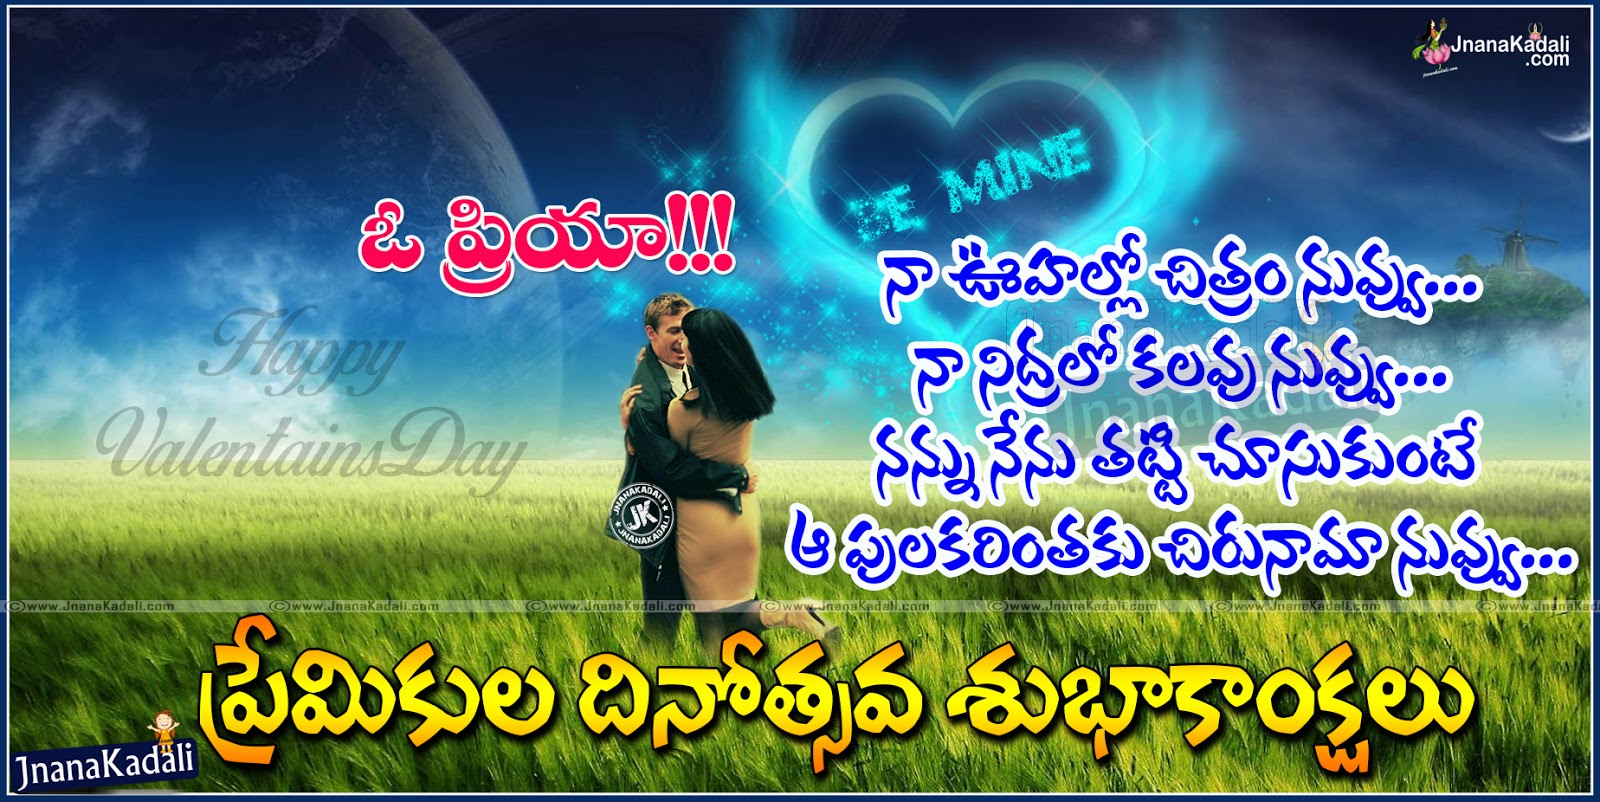 Nice Telugu Valentines Day Wishes With Love Quotes Jnana Kadali